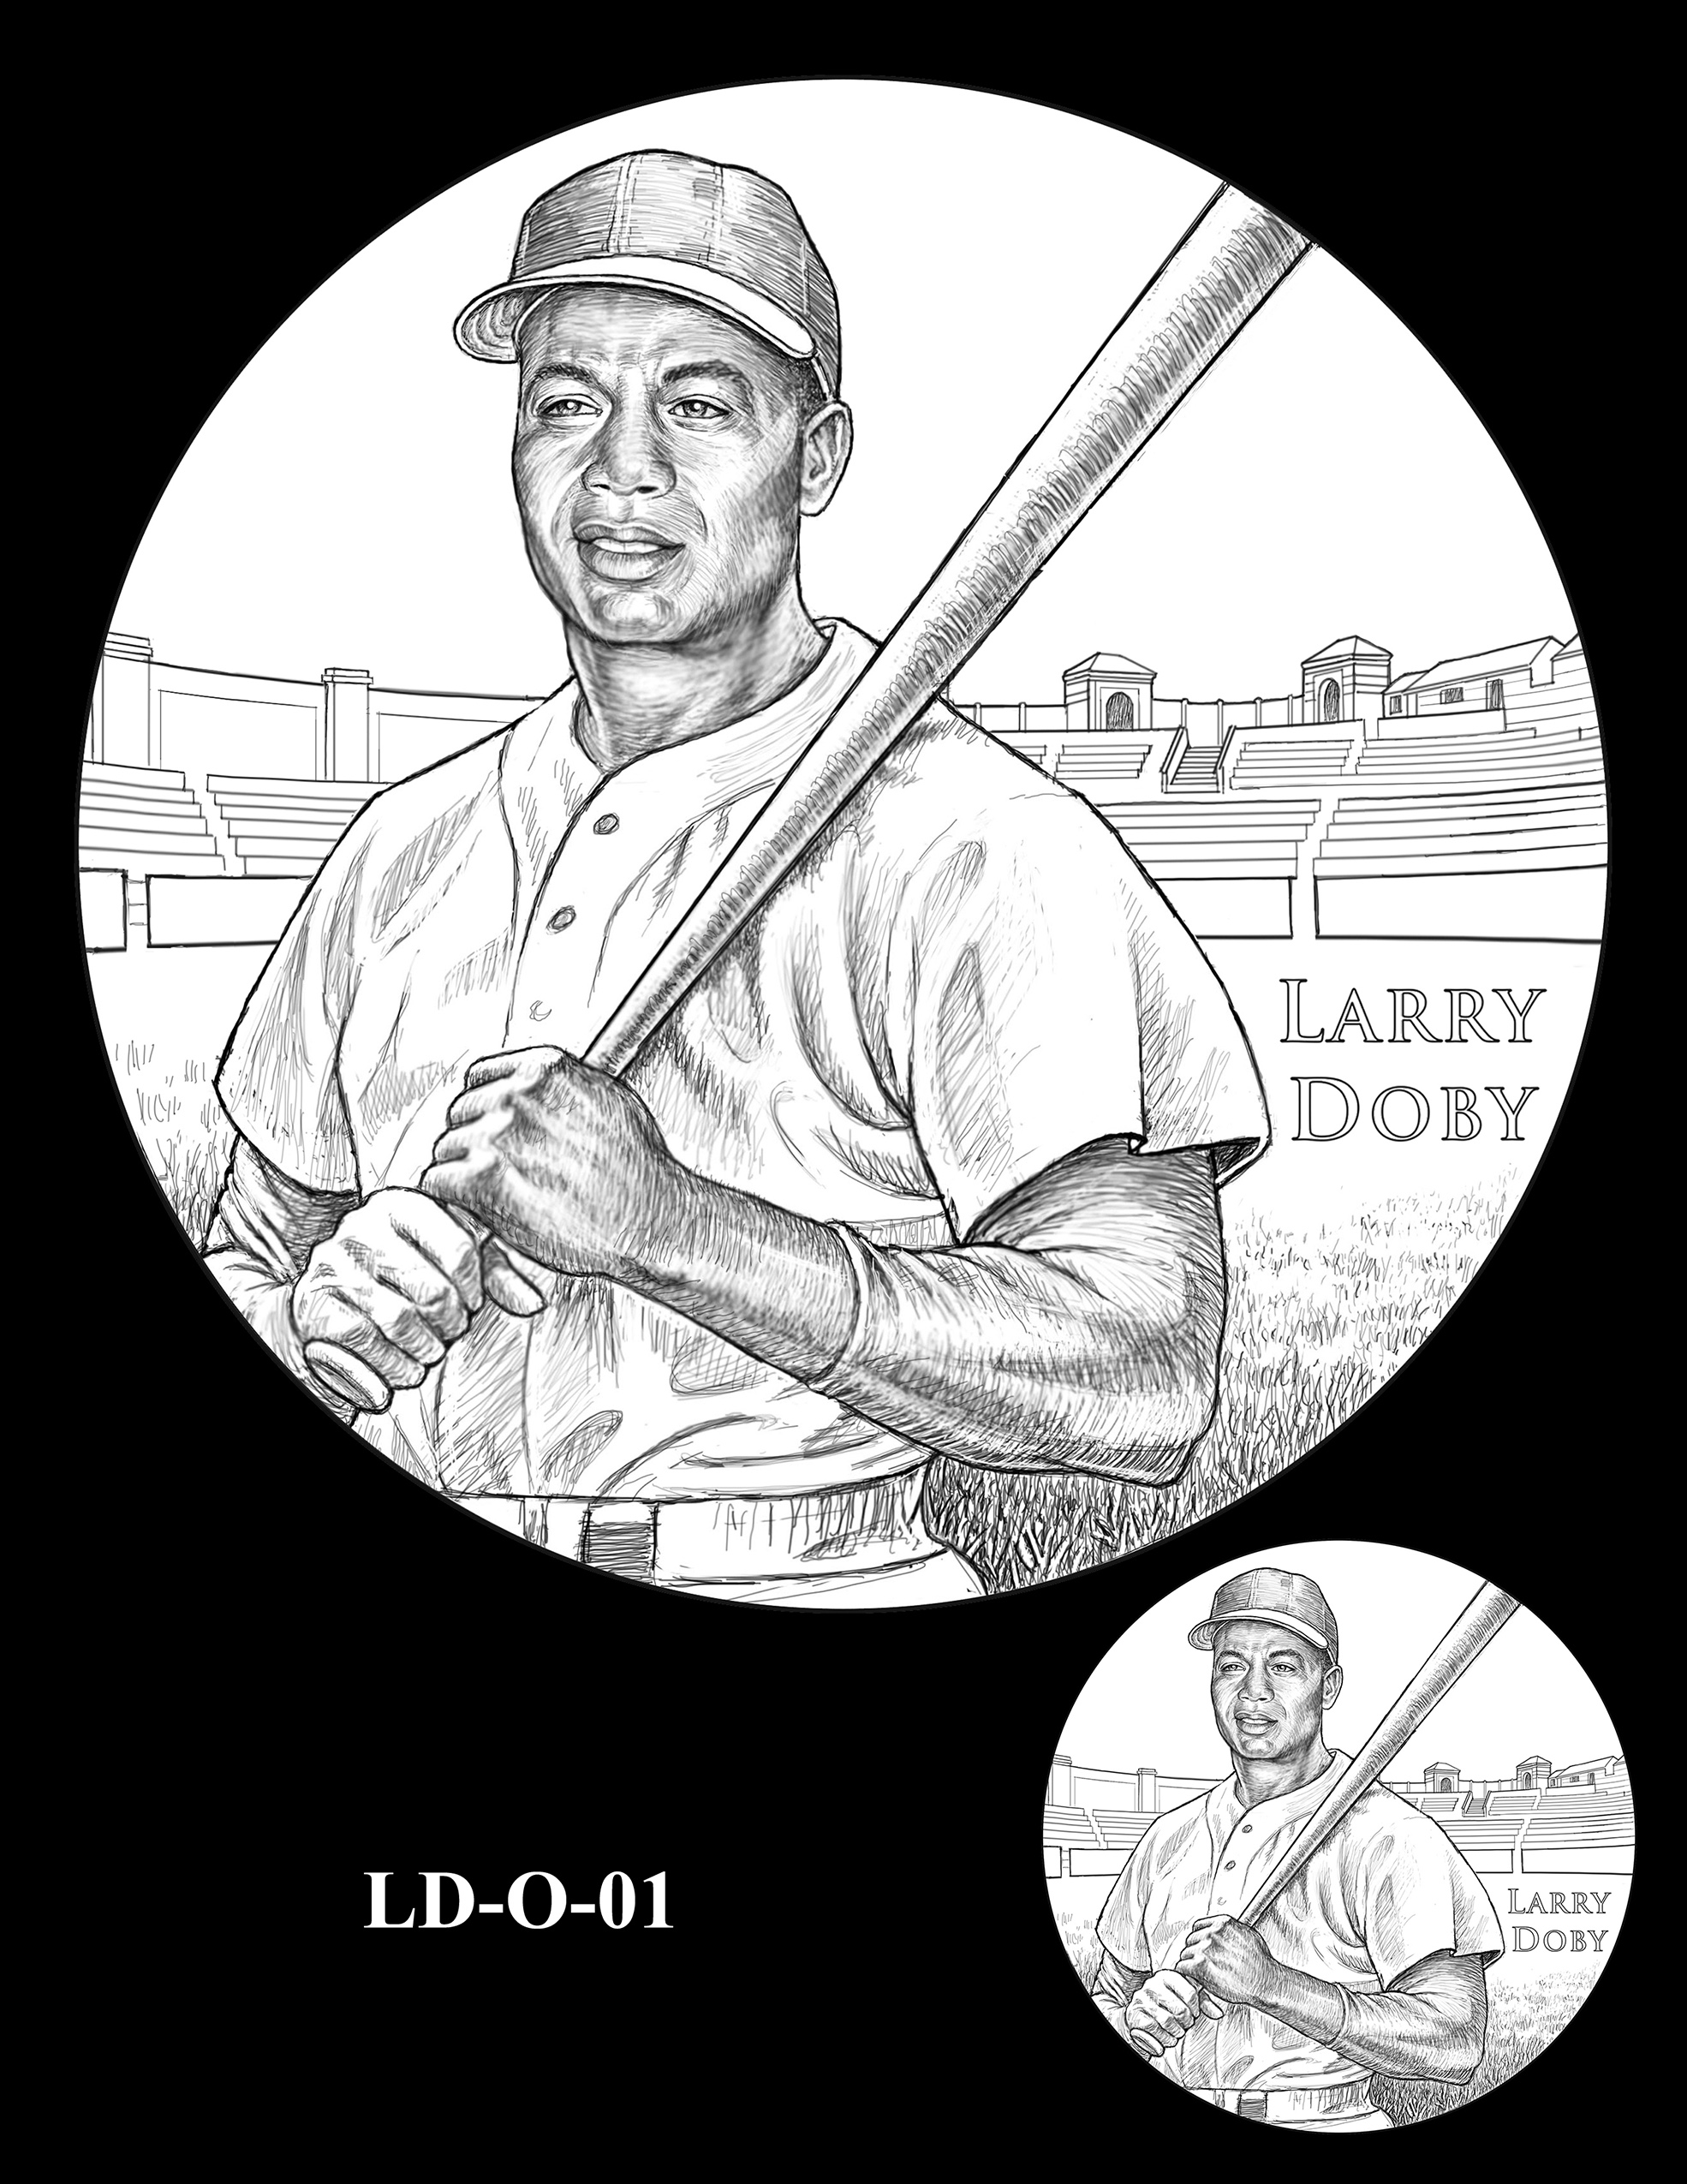 LD-O-01 -- Larry Doby Congressional Gold Medal